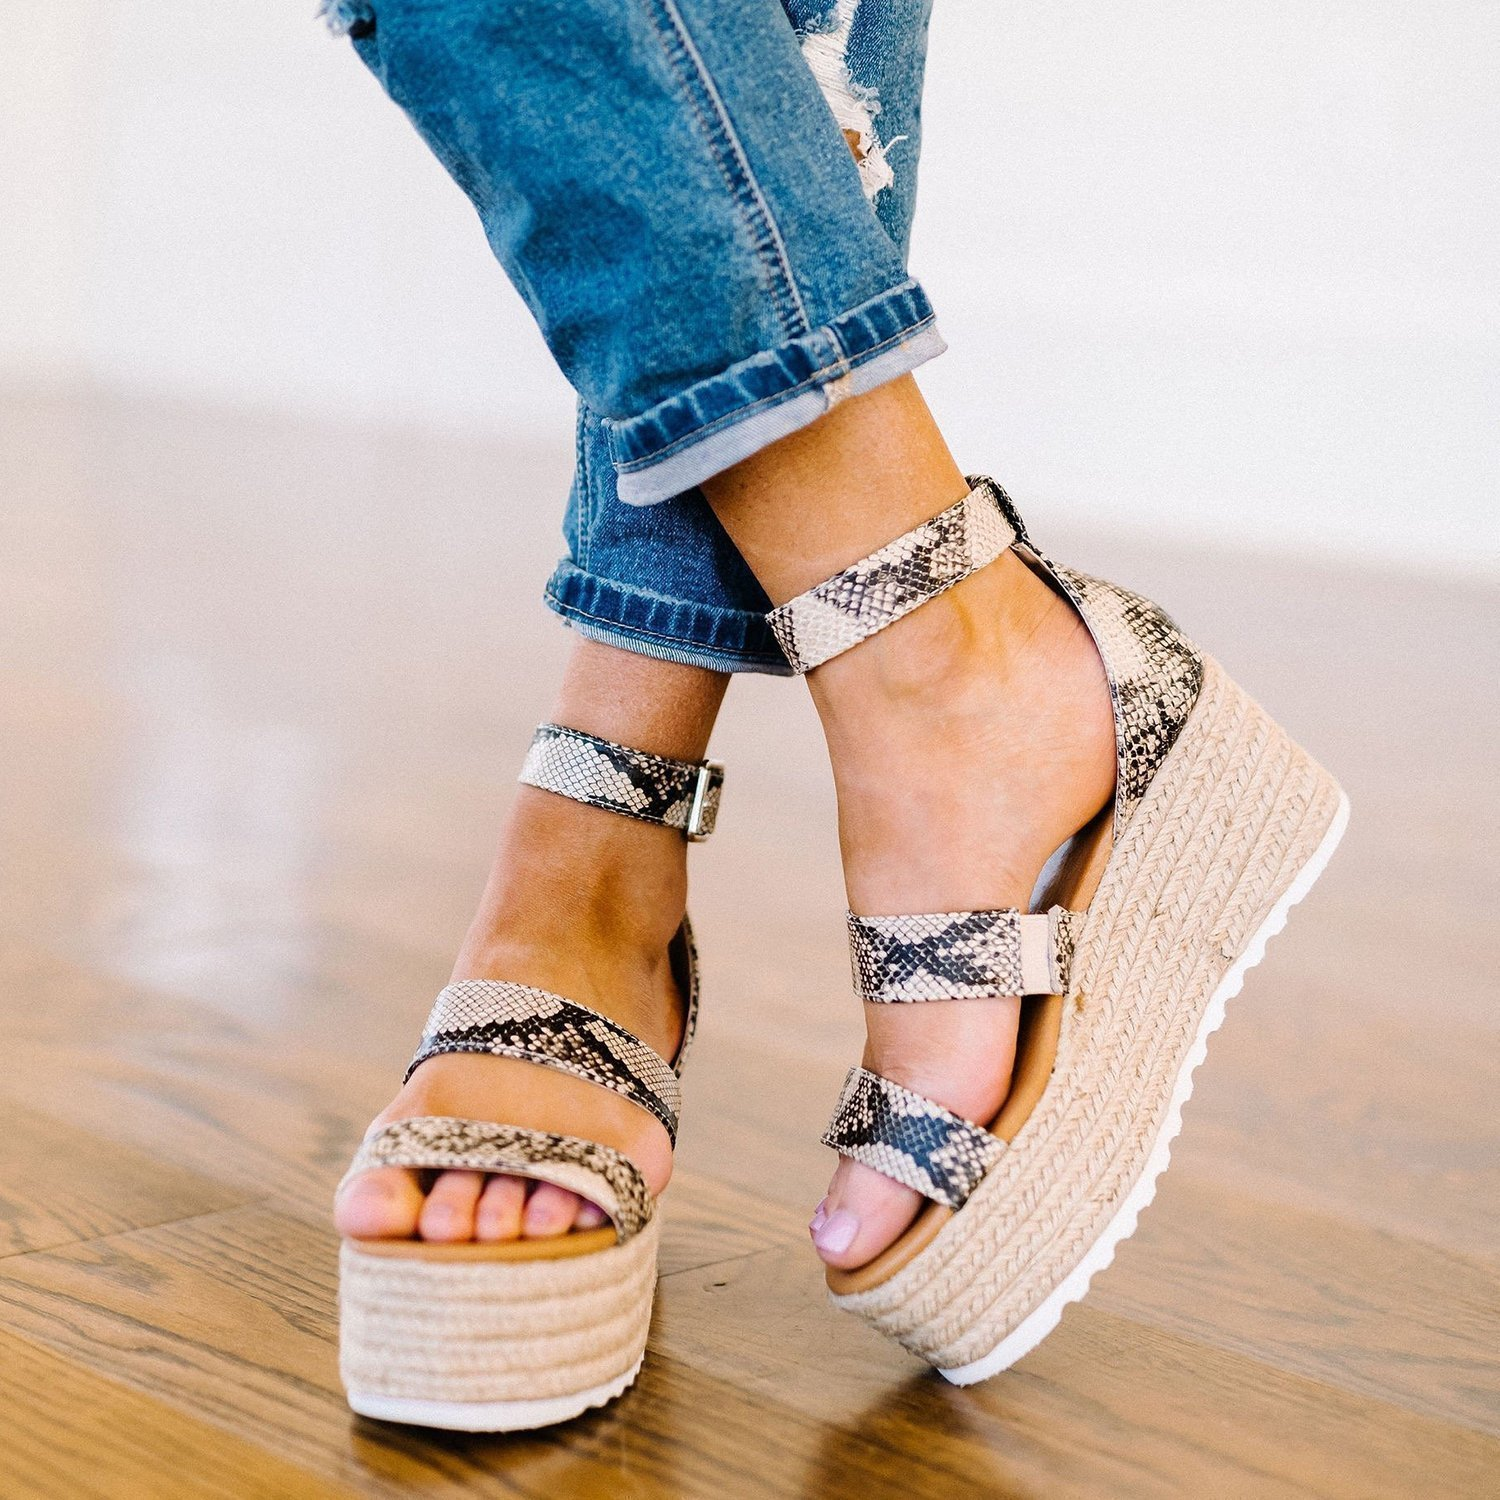 Mokoshoes Espadrille Open Toe Ankle Strap Platform Sandals (Ship in 24 Hours)